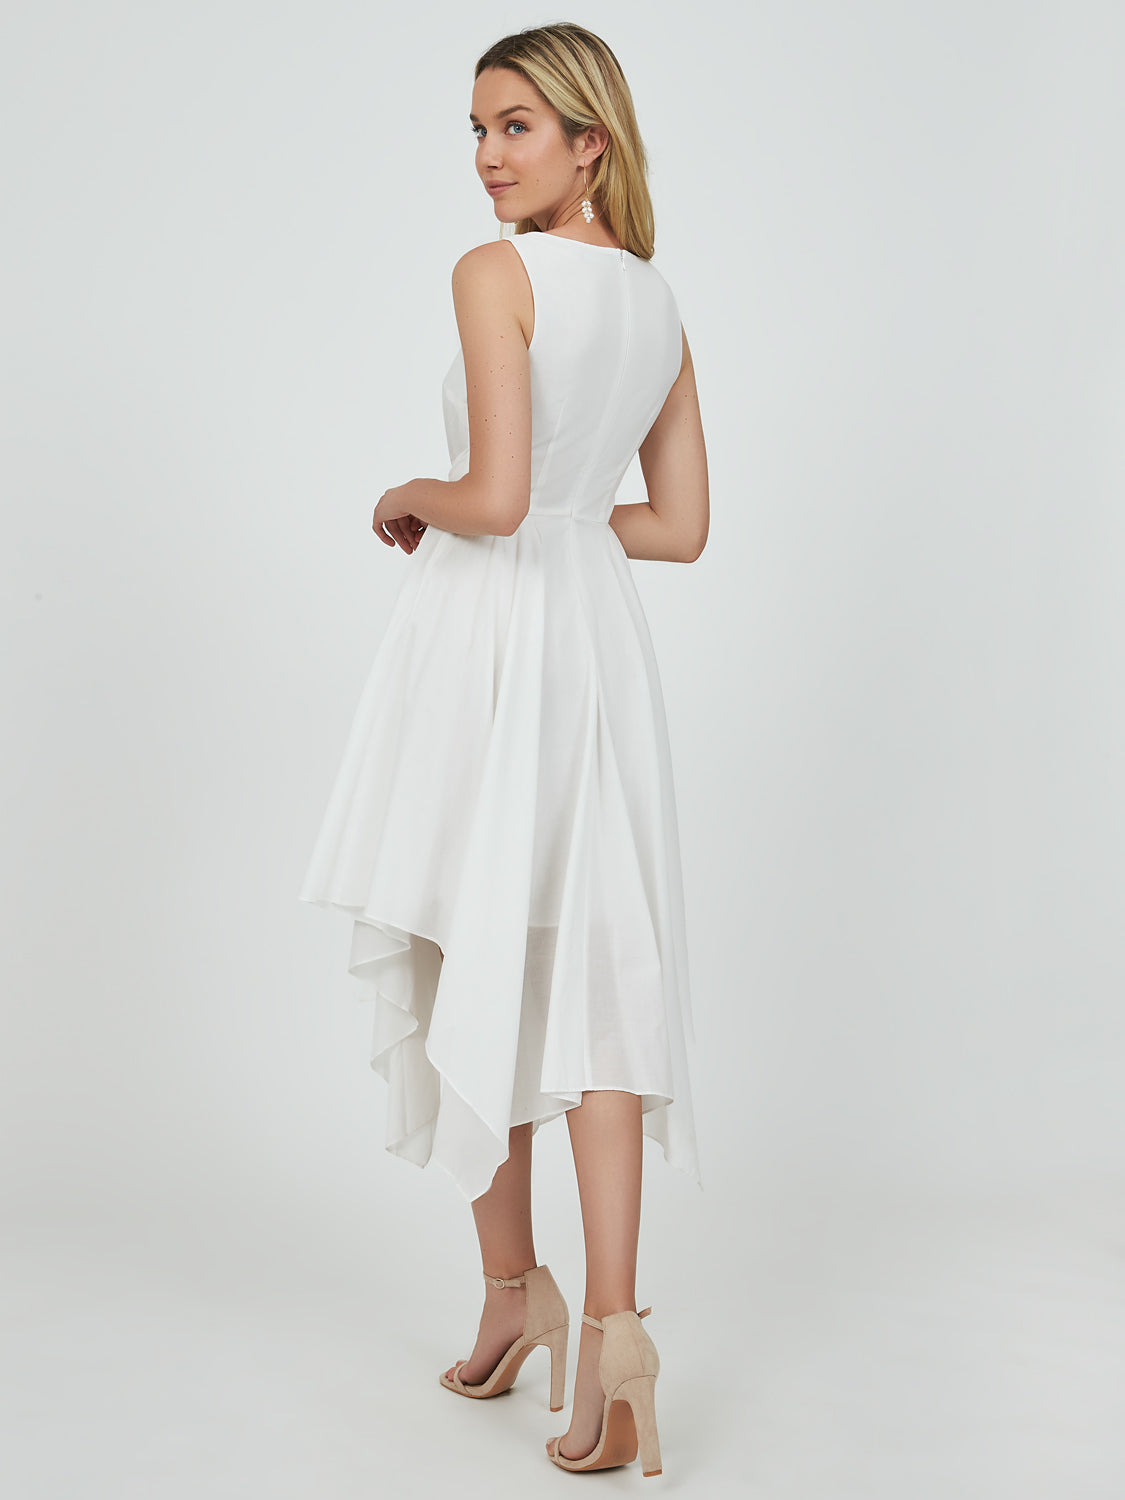 Sleeveless Cotton Handkerchief Midi Dress